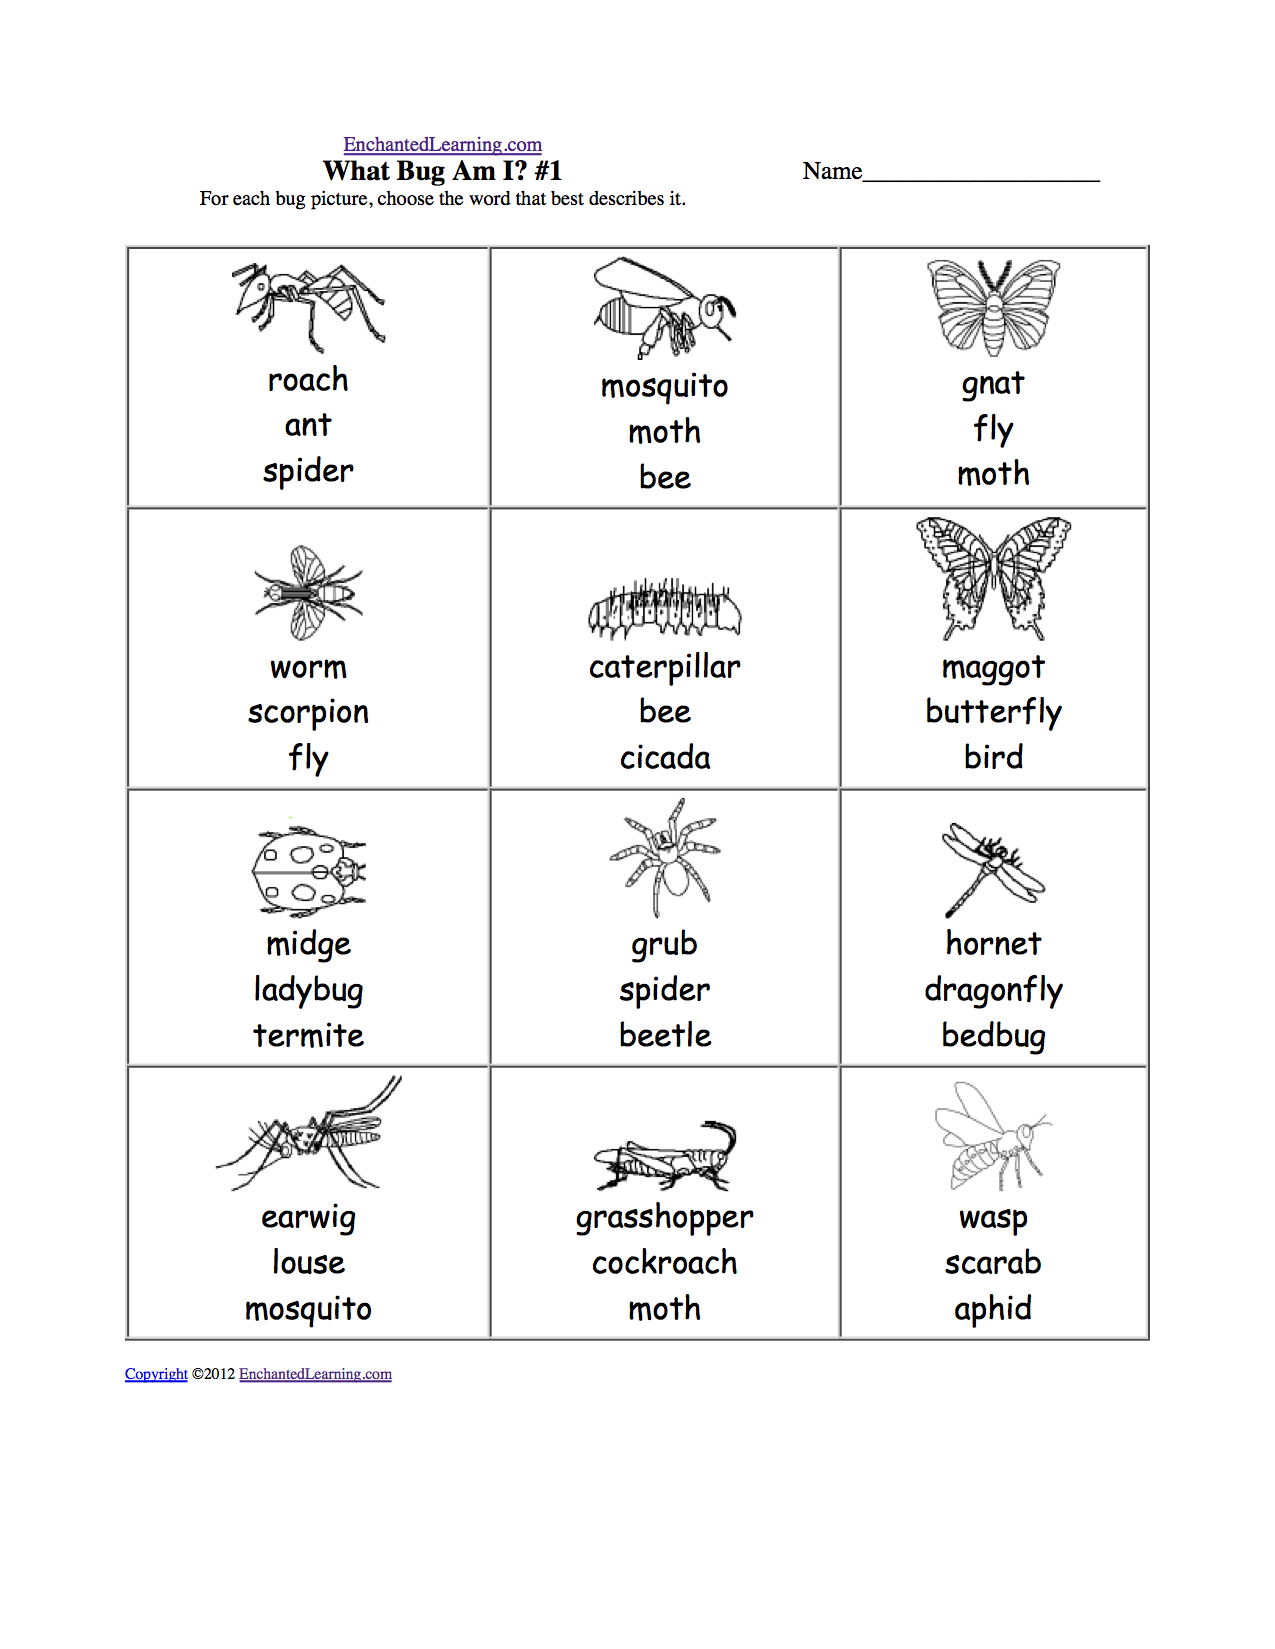 Aldiablosus  Pleasant What Am I Worksheet Printouts  Enchantedlearningcom With Fetching Graphing Coordinates To Make A Picture Worksheet Besides Nonfiction Comprehension Worksheets Furthermore Printable Worksheets For  Year Olds With Nice Silent E Worksheets Nd Grade Also Regular Verbs Worksheet In Addition Rd Grade Math Facts Worksheets And David Goes To School Worksheets As Well As Coterminal Angles Worksheet With Answers Additionally Adjectives Worksheet Th Grade From Enchantedlearningcom With Aldiablosus  Fetching What Am I Worksheet Printouts  Enchantedlearningcom With Nice Graphing Coordinates To Make A Picture Worksheet Besides Nonfiction Comprehension Worksheets Furthermore Printable Worksheets For  Year Olds And Pleasant Silent E Worksheets Nd Grade Also Regular Verbs Worksheet In Addition Rd Grade Math Facts Worksheets From Enchantedlearningcom